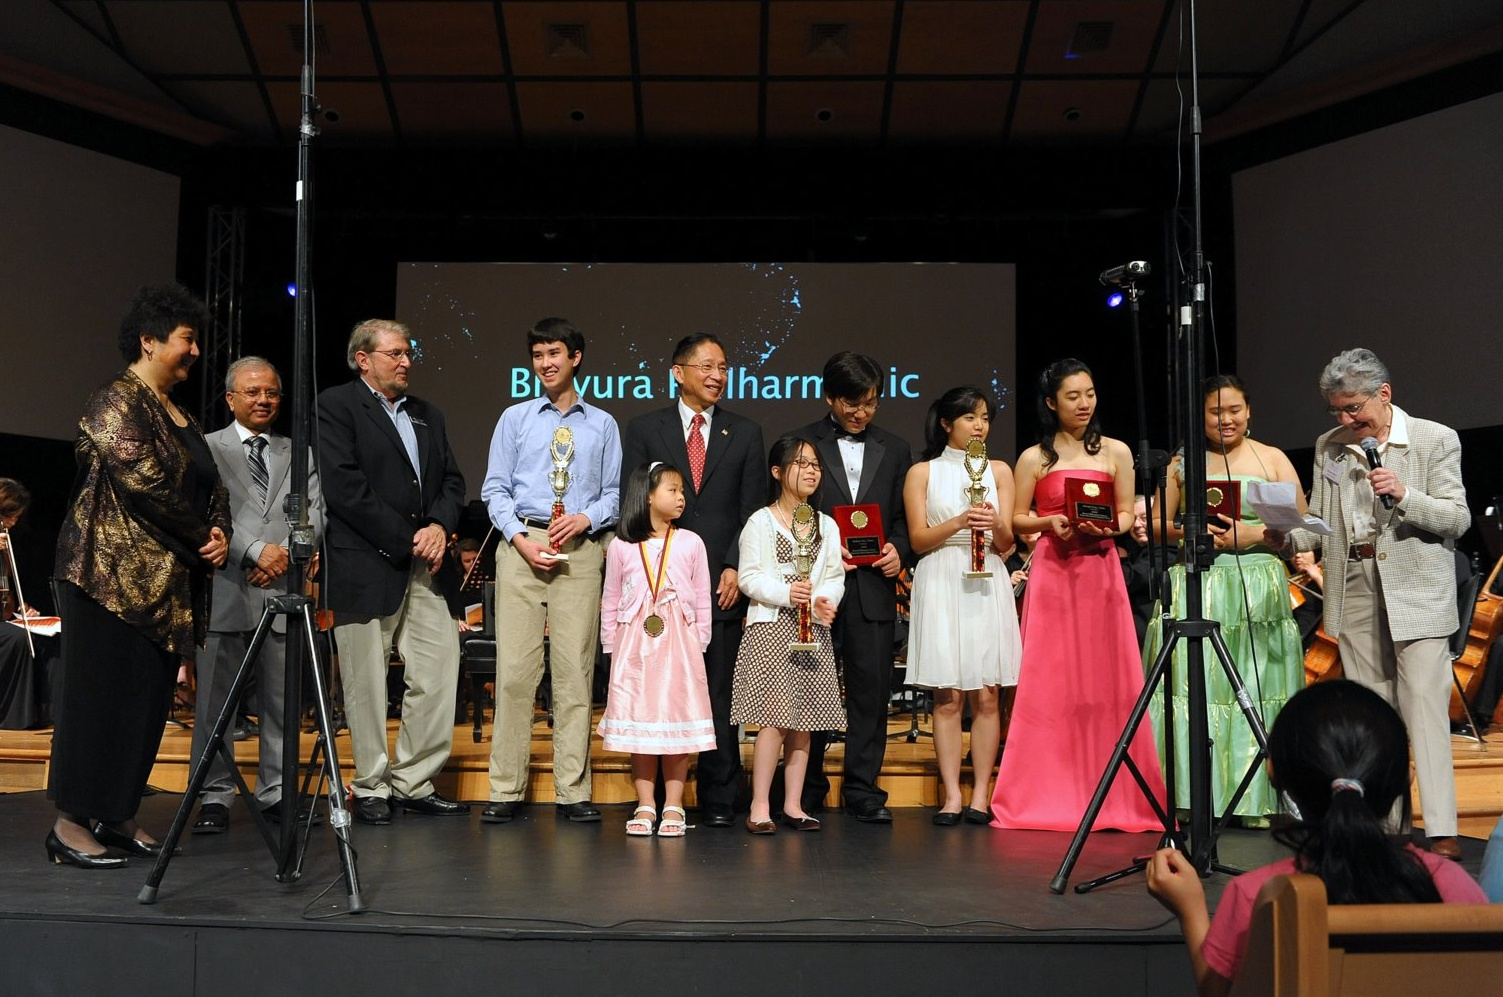 Award Presentation of Winners      Back Row - Maestra Lin, Plainsboro Councilman Nabi, Plainsboro Deputy Mayor Lewis, Paul von Autenried, West Windsor Mayor Hsueh, Andrew Sun, Christine Shieh, Cheryl Peng, Sunny Chang and Myrna Reiter Front Row - Crystal Chiu and Gabrielle Hsu